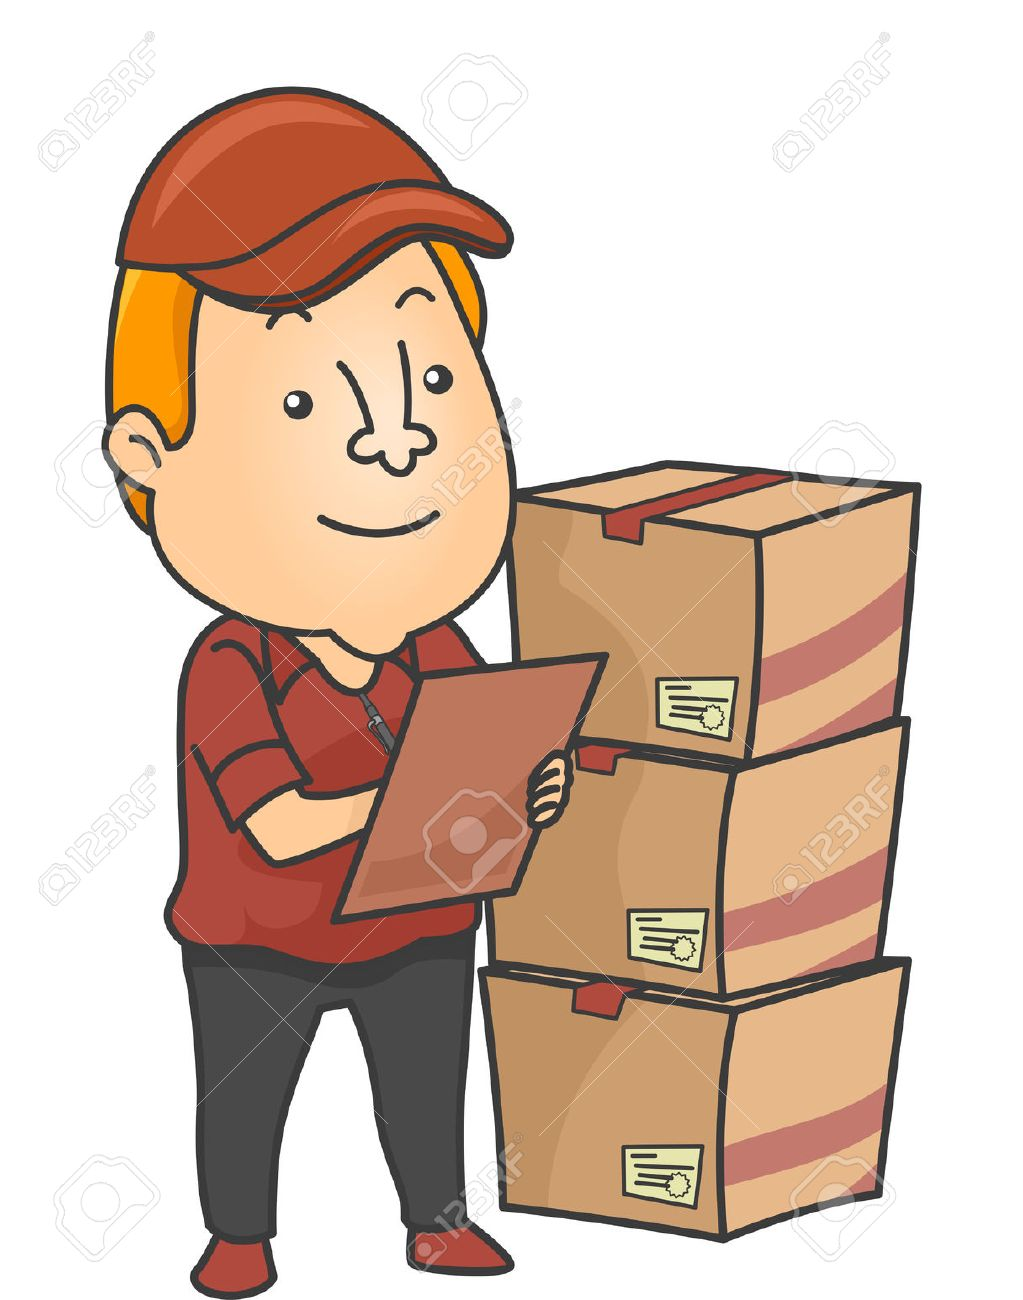 illustration of an inventory checker checking deliveries stock illustration 38484371 - Inventory Checker